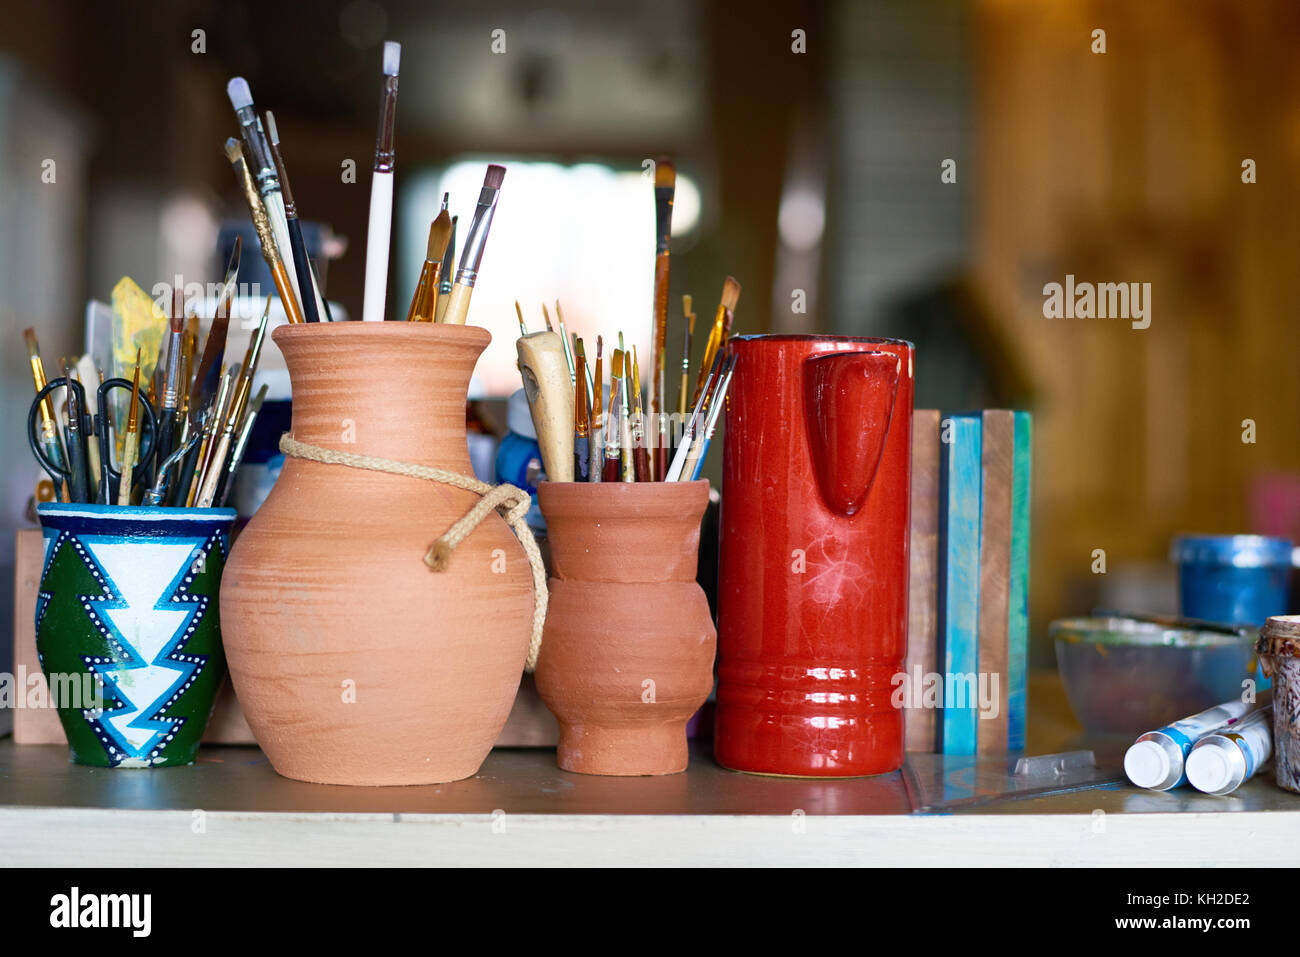 Paint A Pot Craft Studio